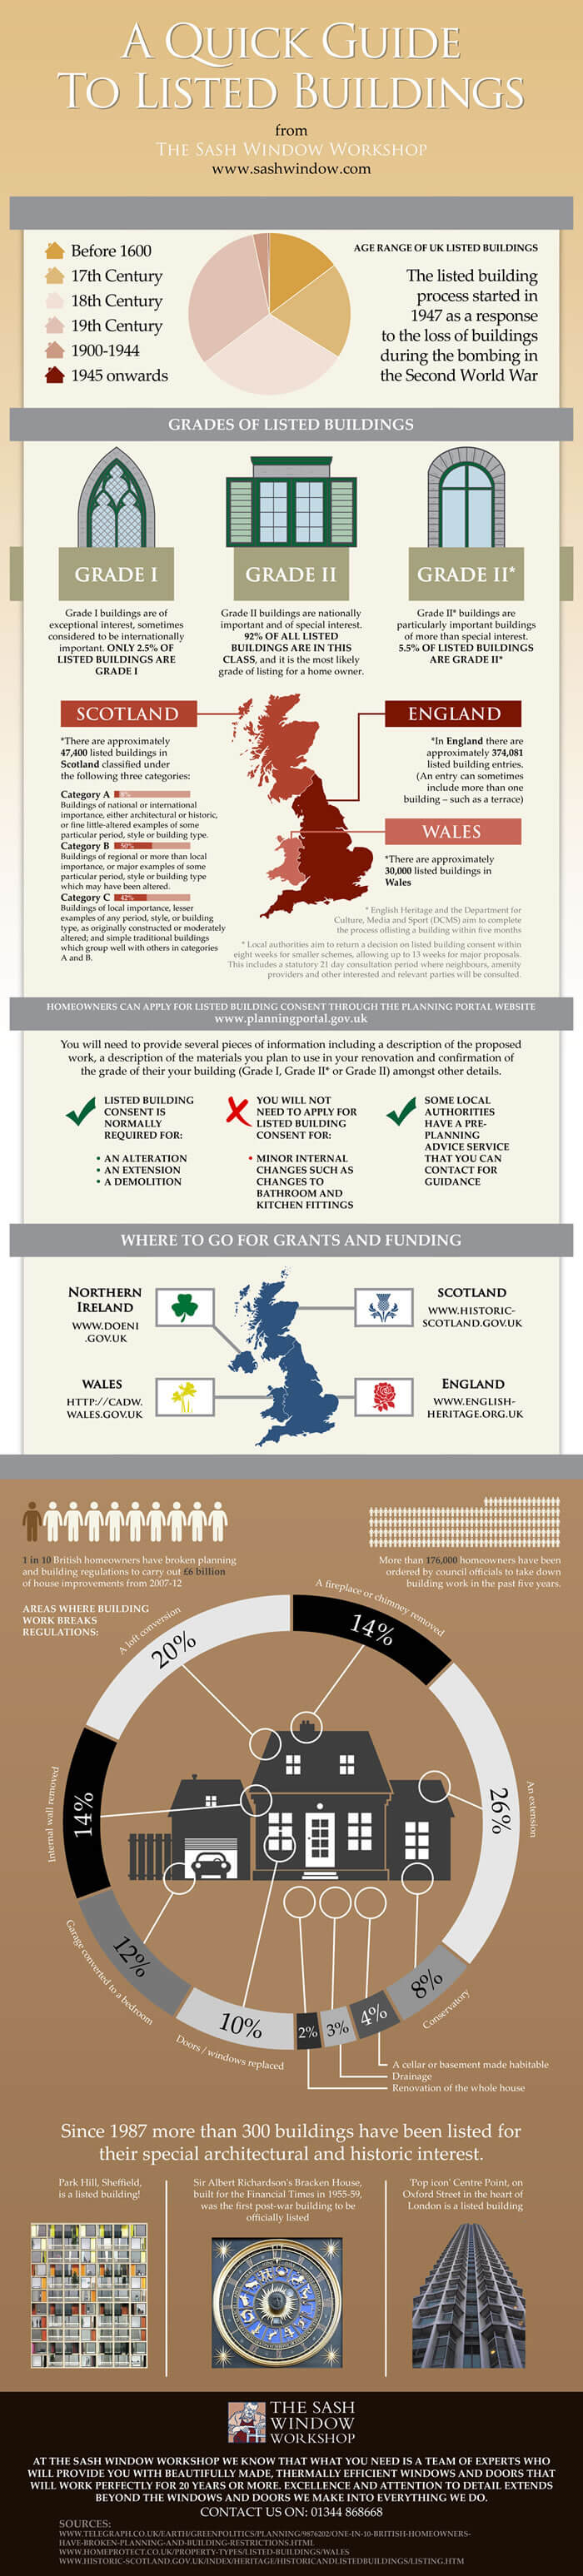 listed building infographic